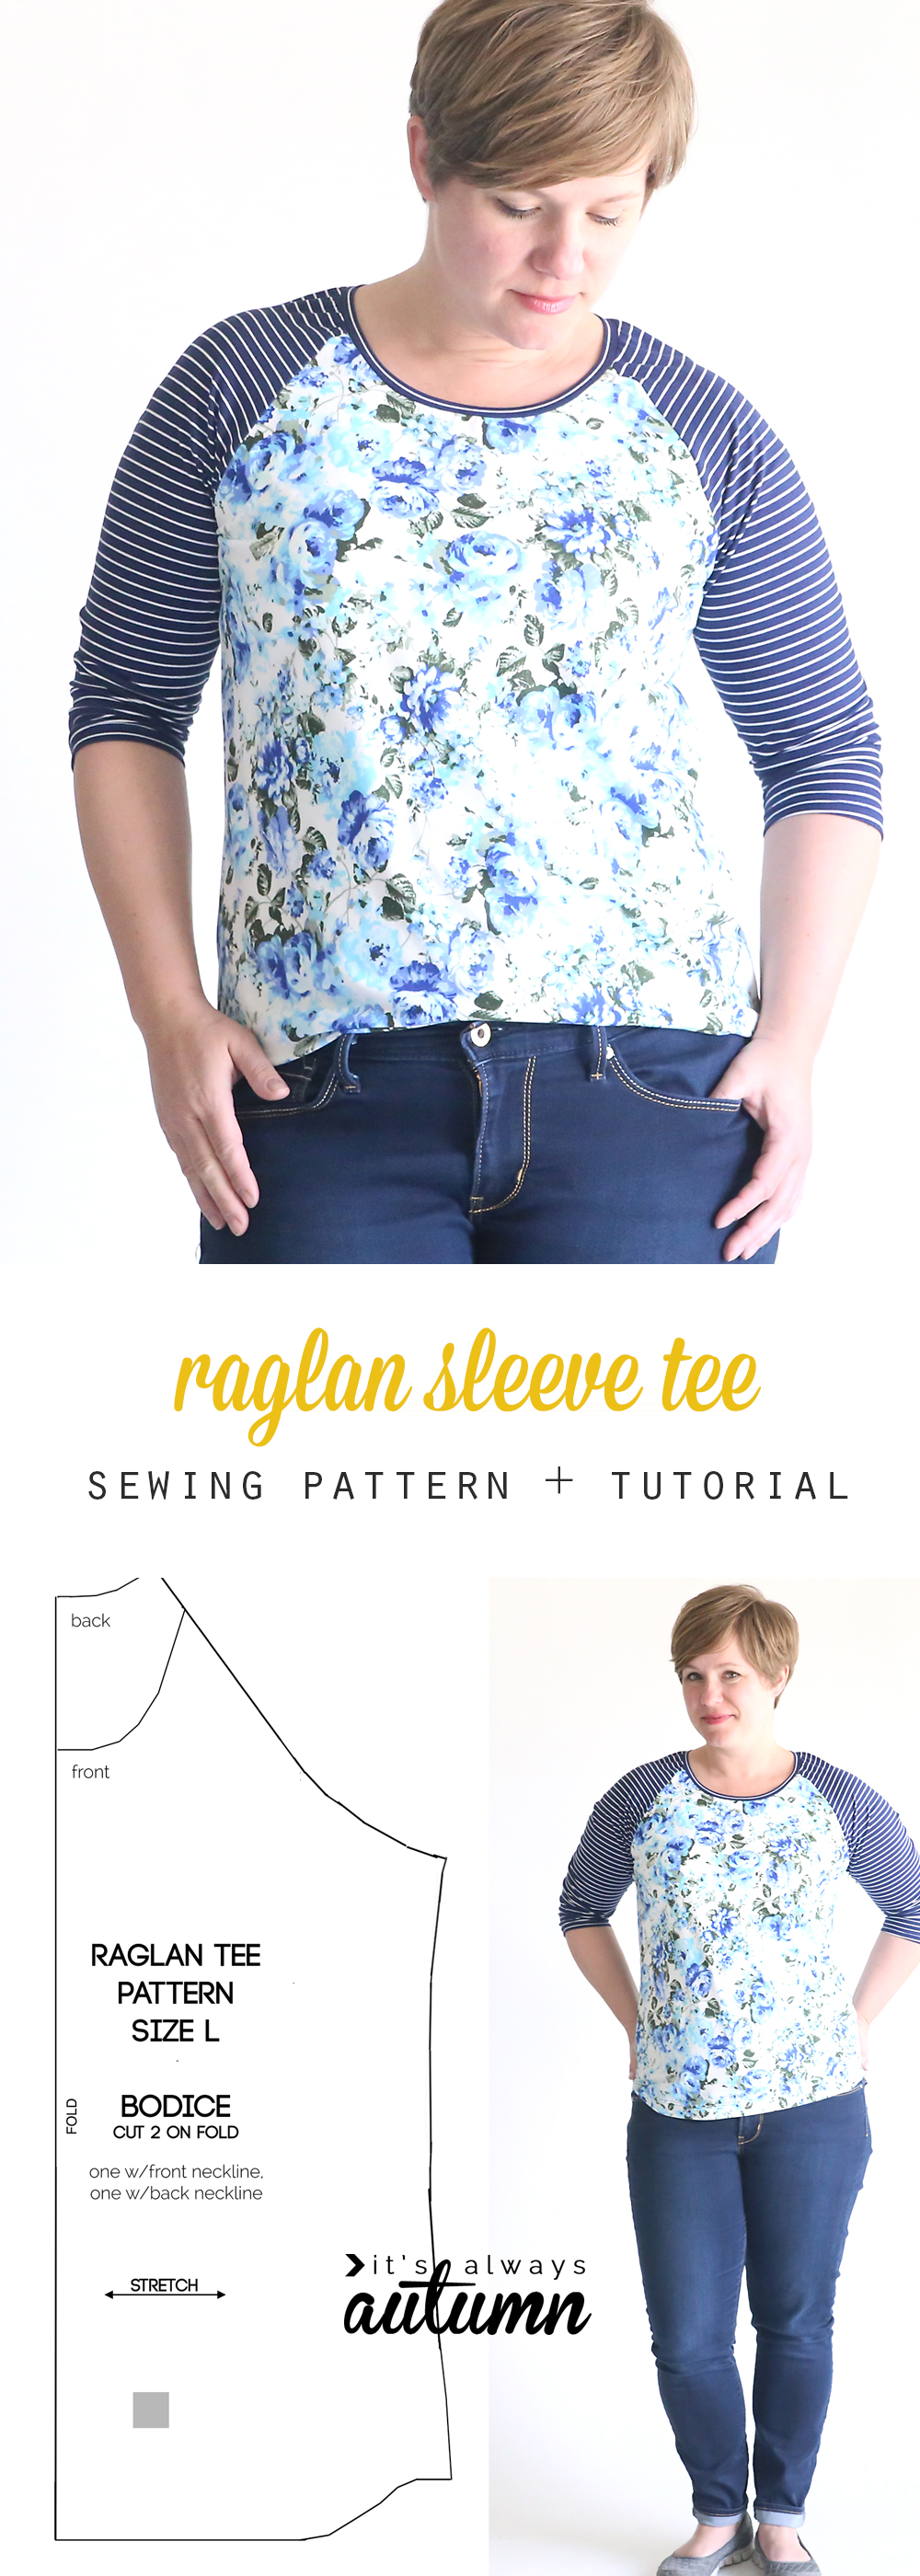 free raglan tee shirt sewing pattern {women's size large} - It's Always Autumn